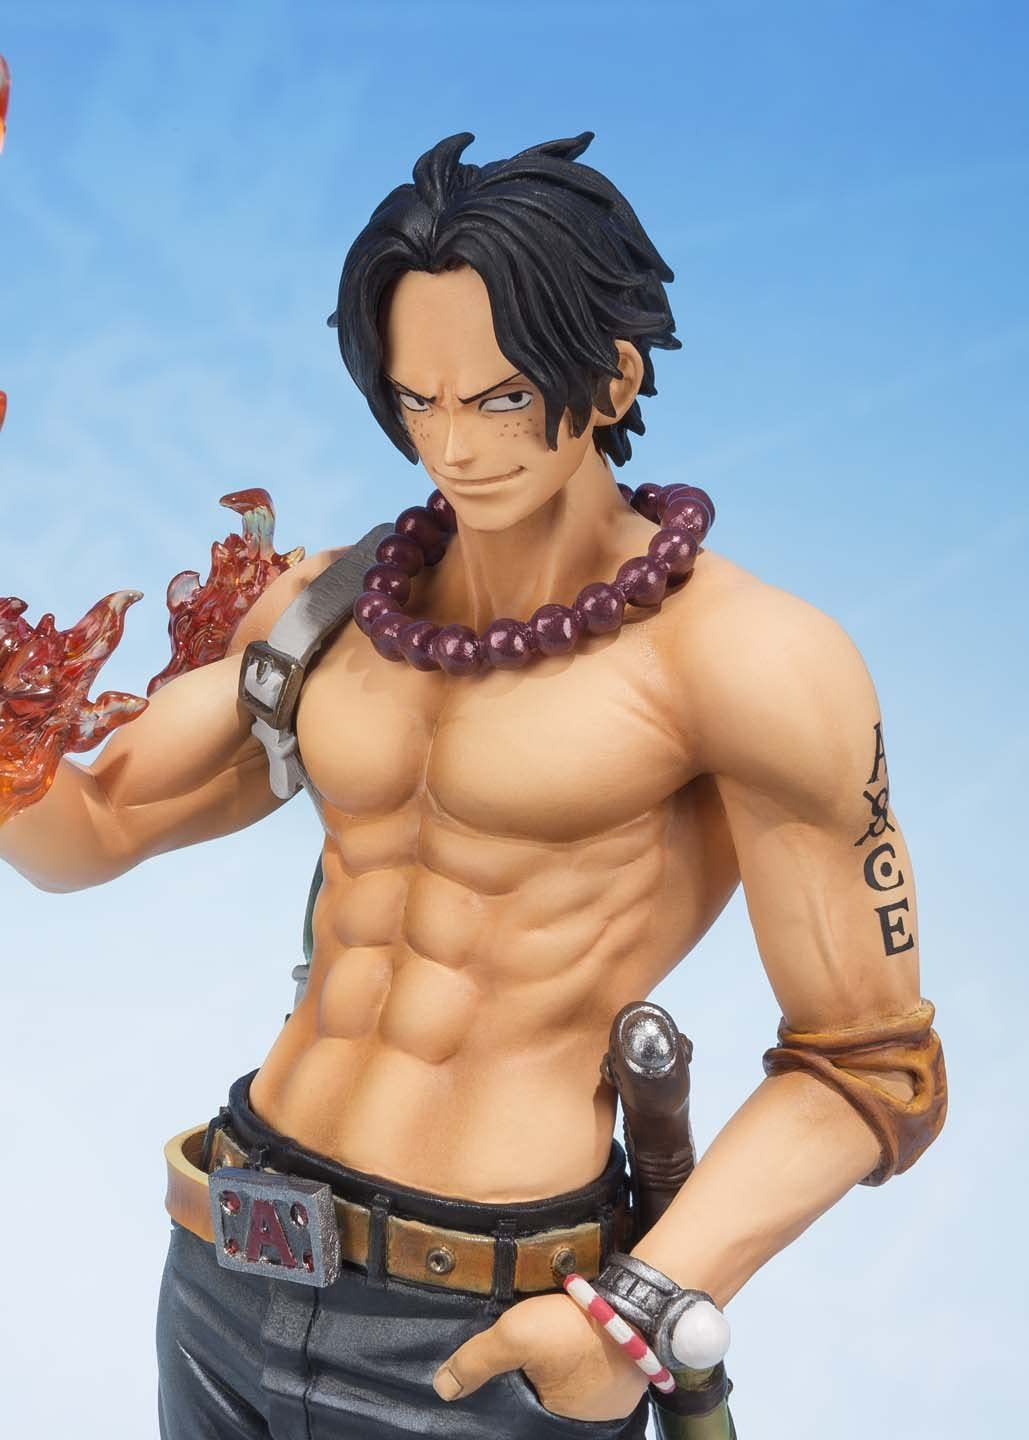 Portgas D. Ace - 5th Anniversary - Figuarts Zero - One Piece - Bandai - Tamashi Nation